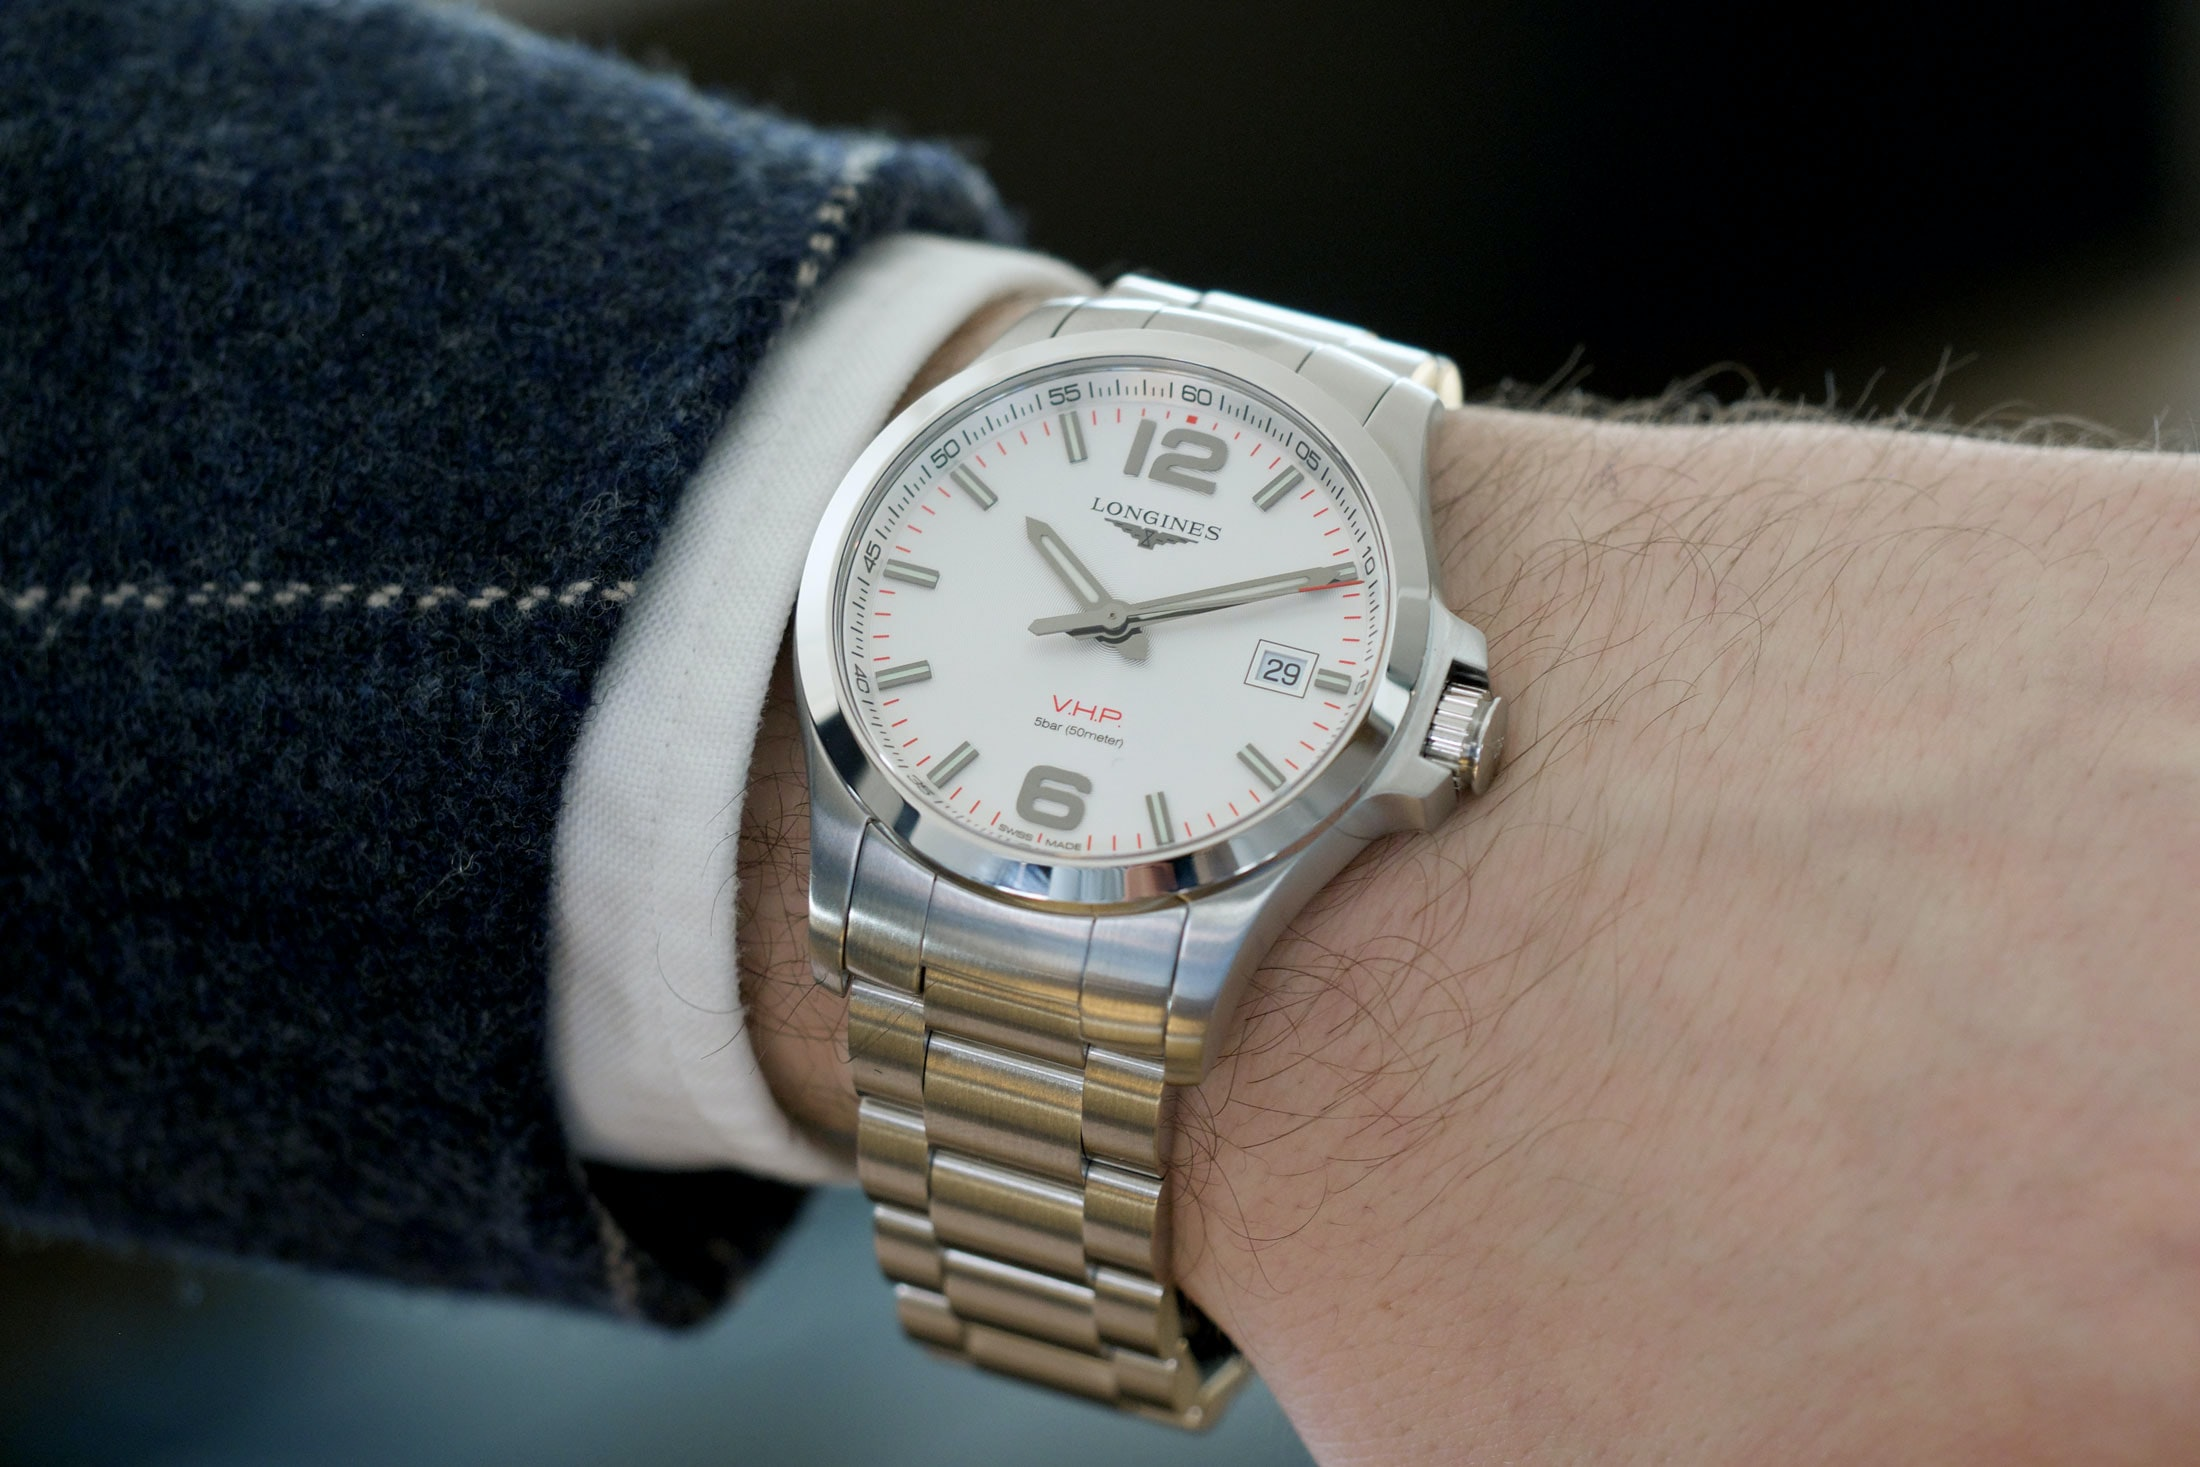 Interview: Longines VP Juan-Carlos Capelli On Why His Company Continues To Invest In Quartz Interview: Longines VP Juan-Carlos Capelli On Why His Company Continues To Invest In Quartz longines 2